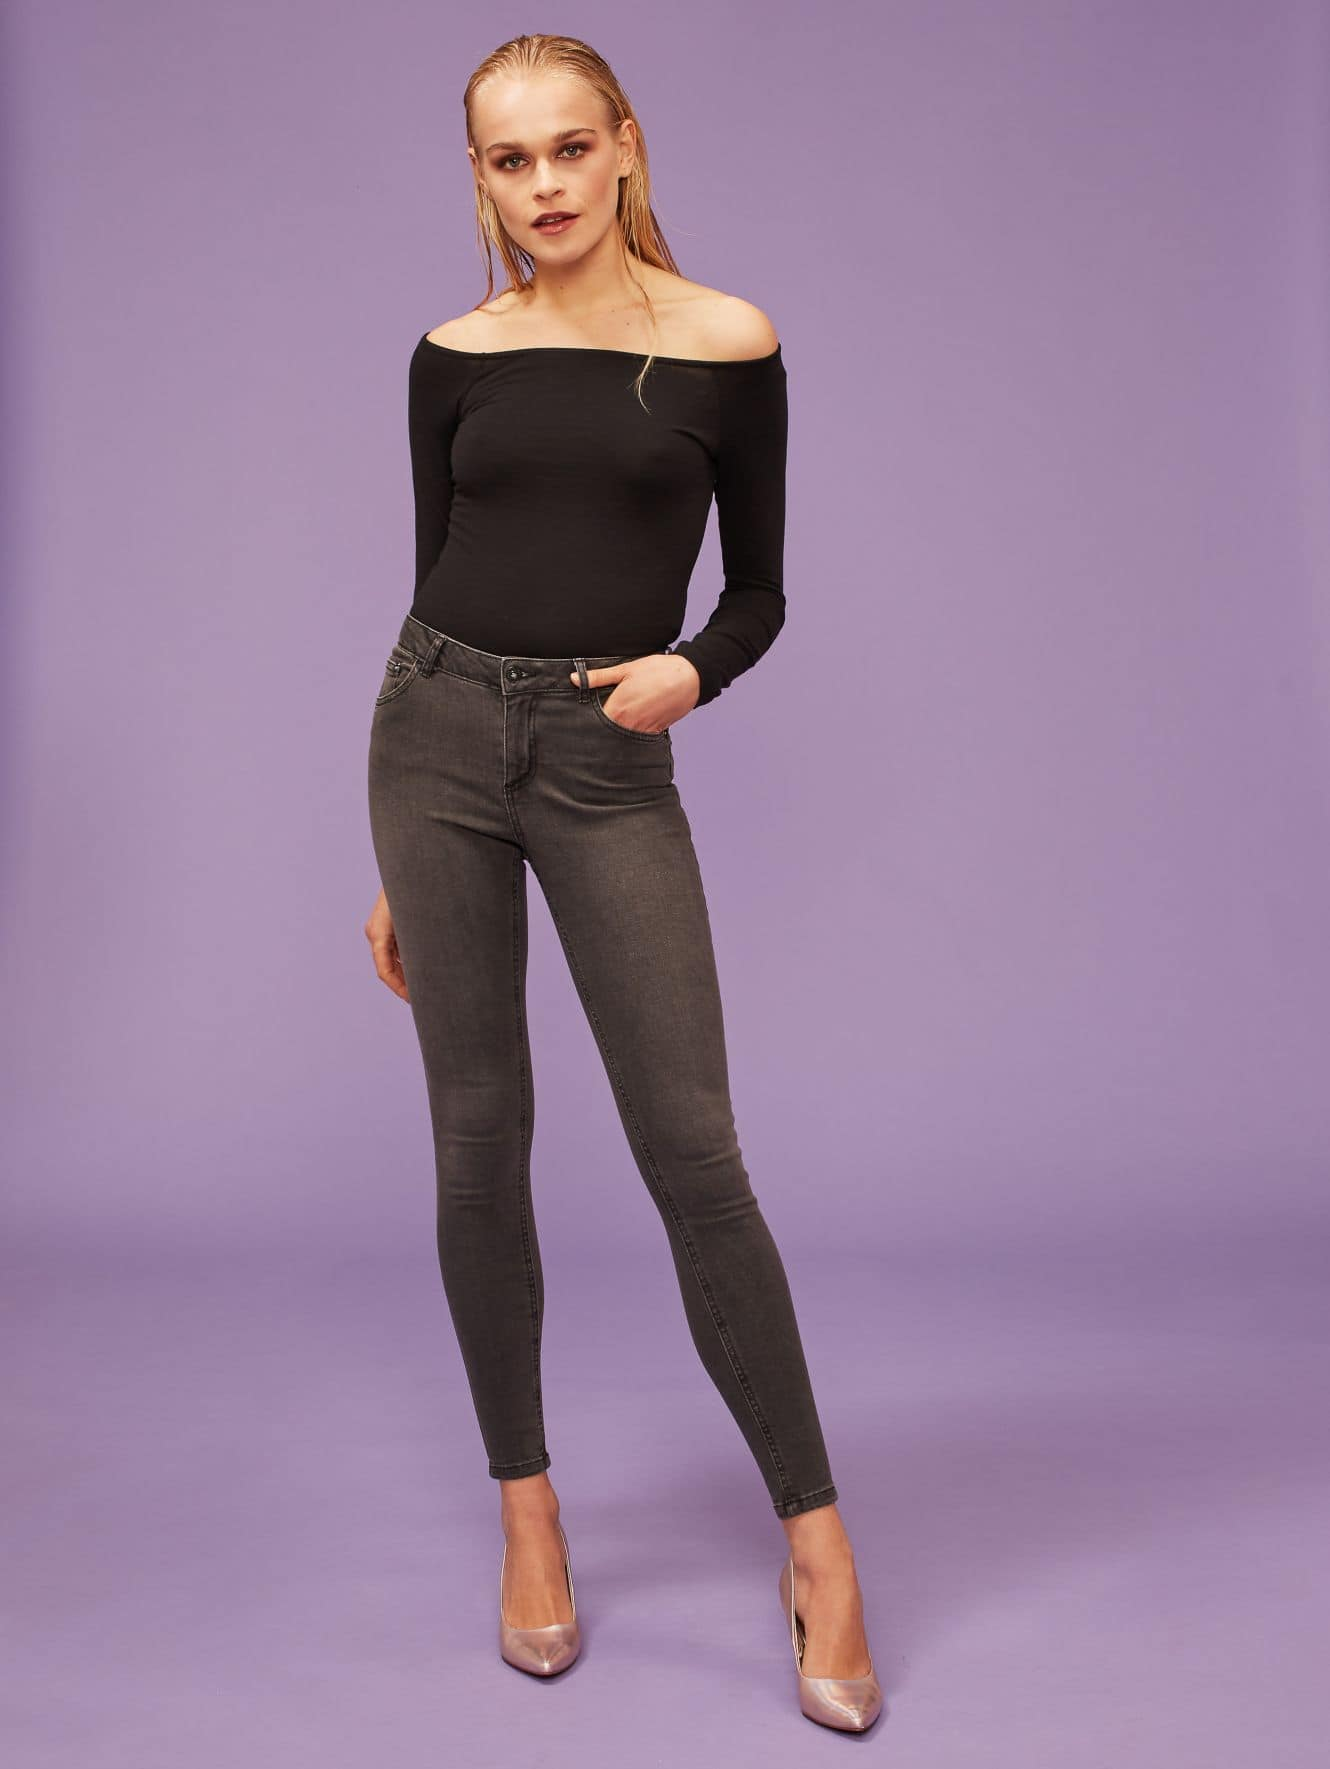 Black push-up jeans